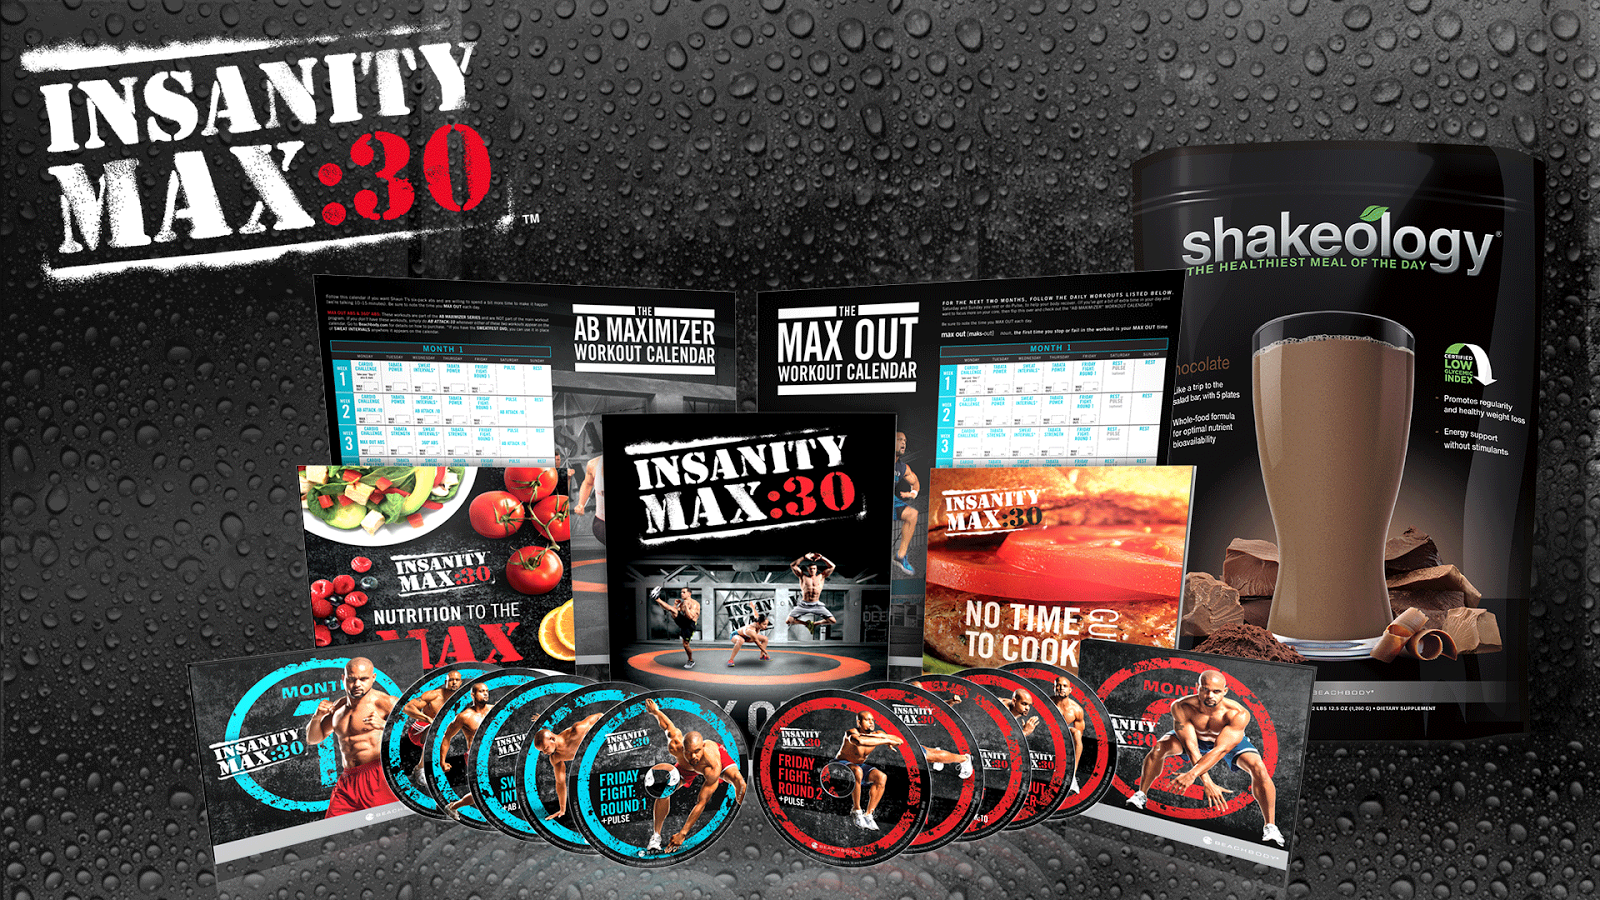 Insanity max 30, shaun t, insanity, workout, fitness, jaime messina